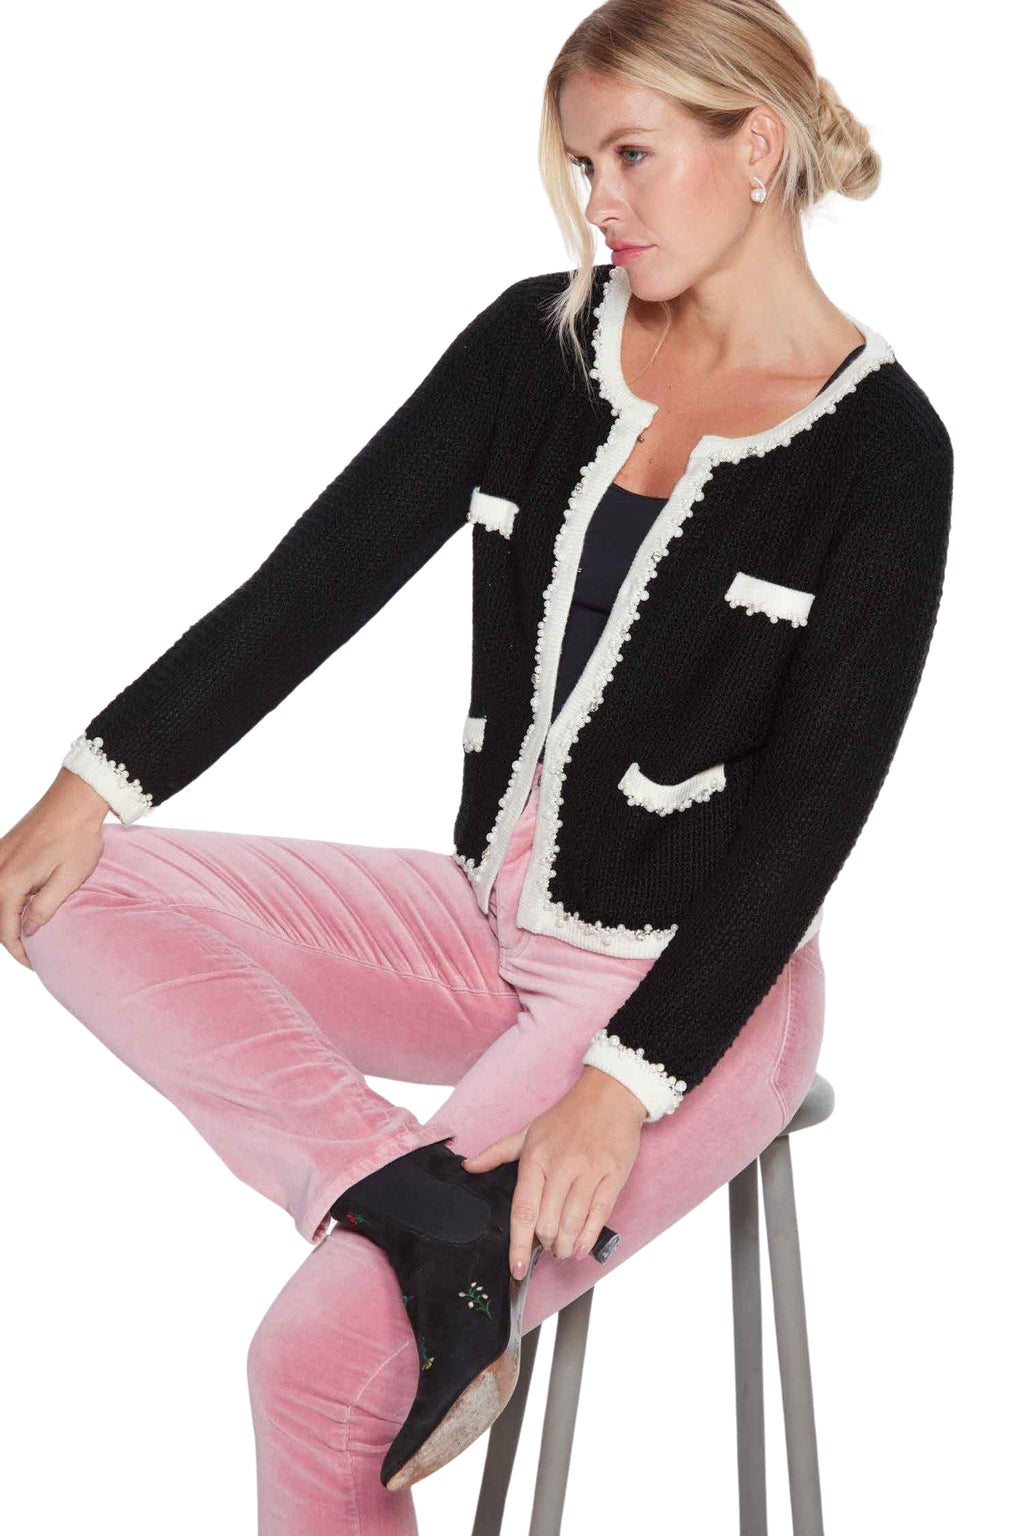 Womens French-style Knitted Jacket in Black inspired by the legendary Coco Chanel. Black with creamy white edging and pearl and diamante trim